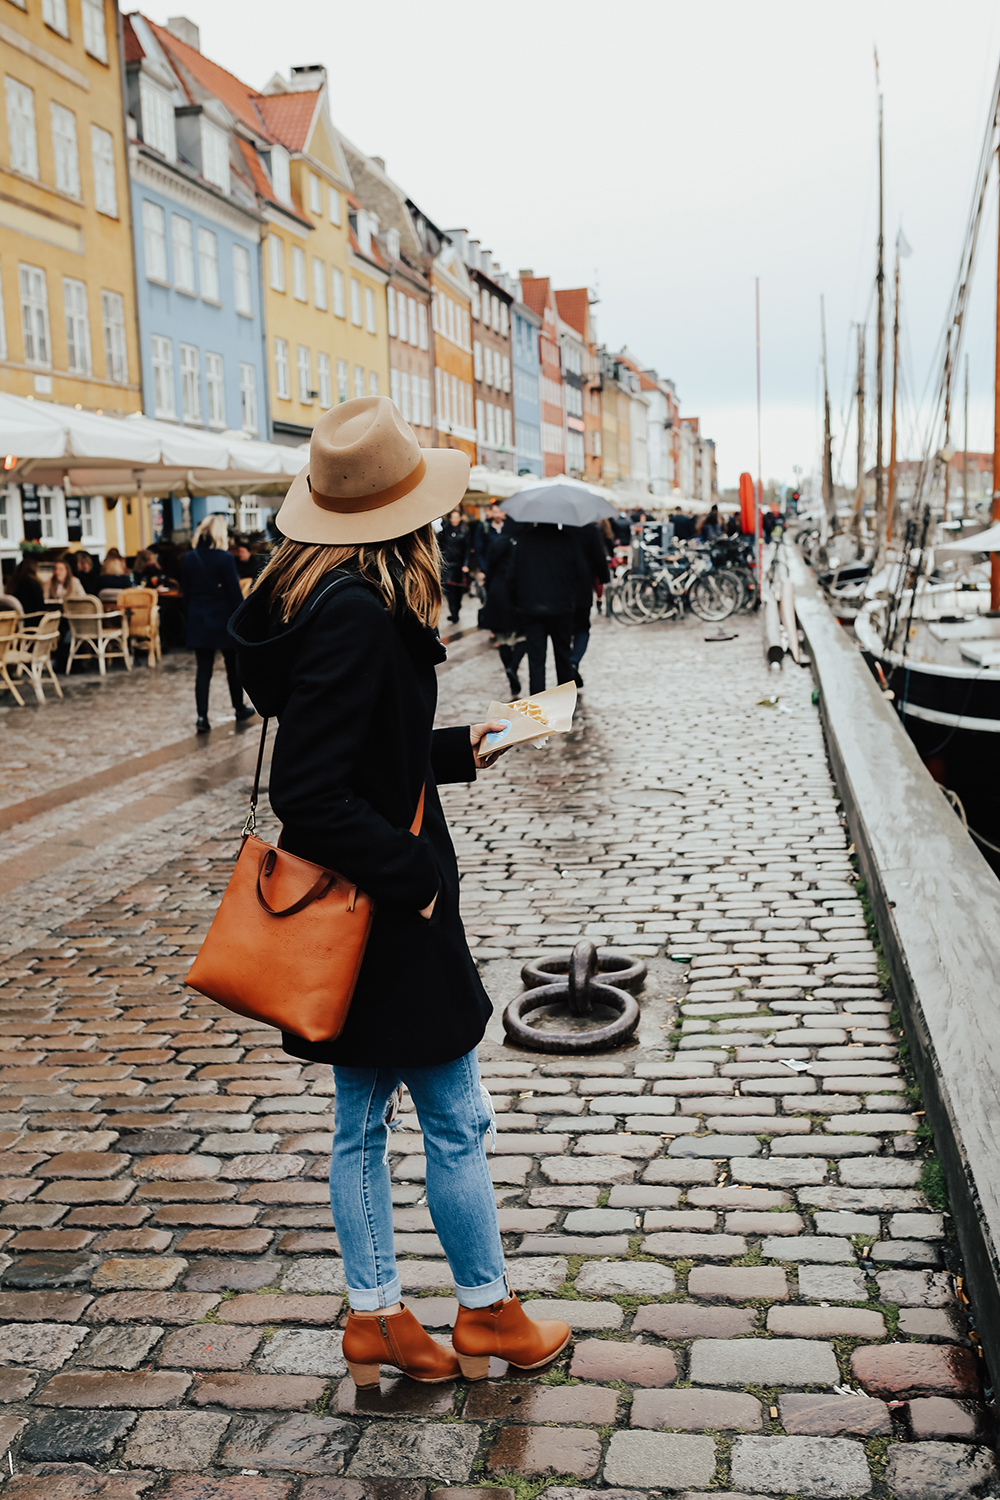 livvyland-blog-olivia-watson-fashion-travel-blogger-princess-cruises-scandinavia-what-to-wear-pack-copenhagen-denmark-colorful-buildings-street